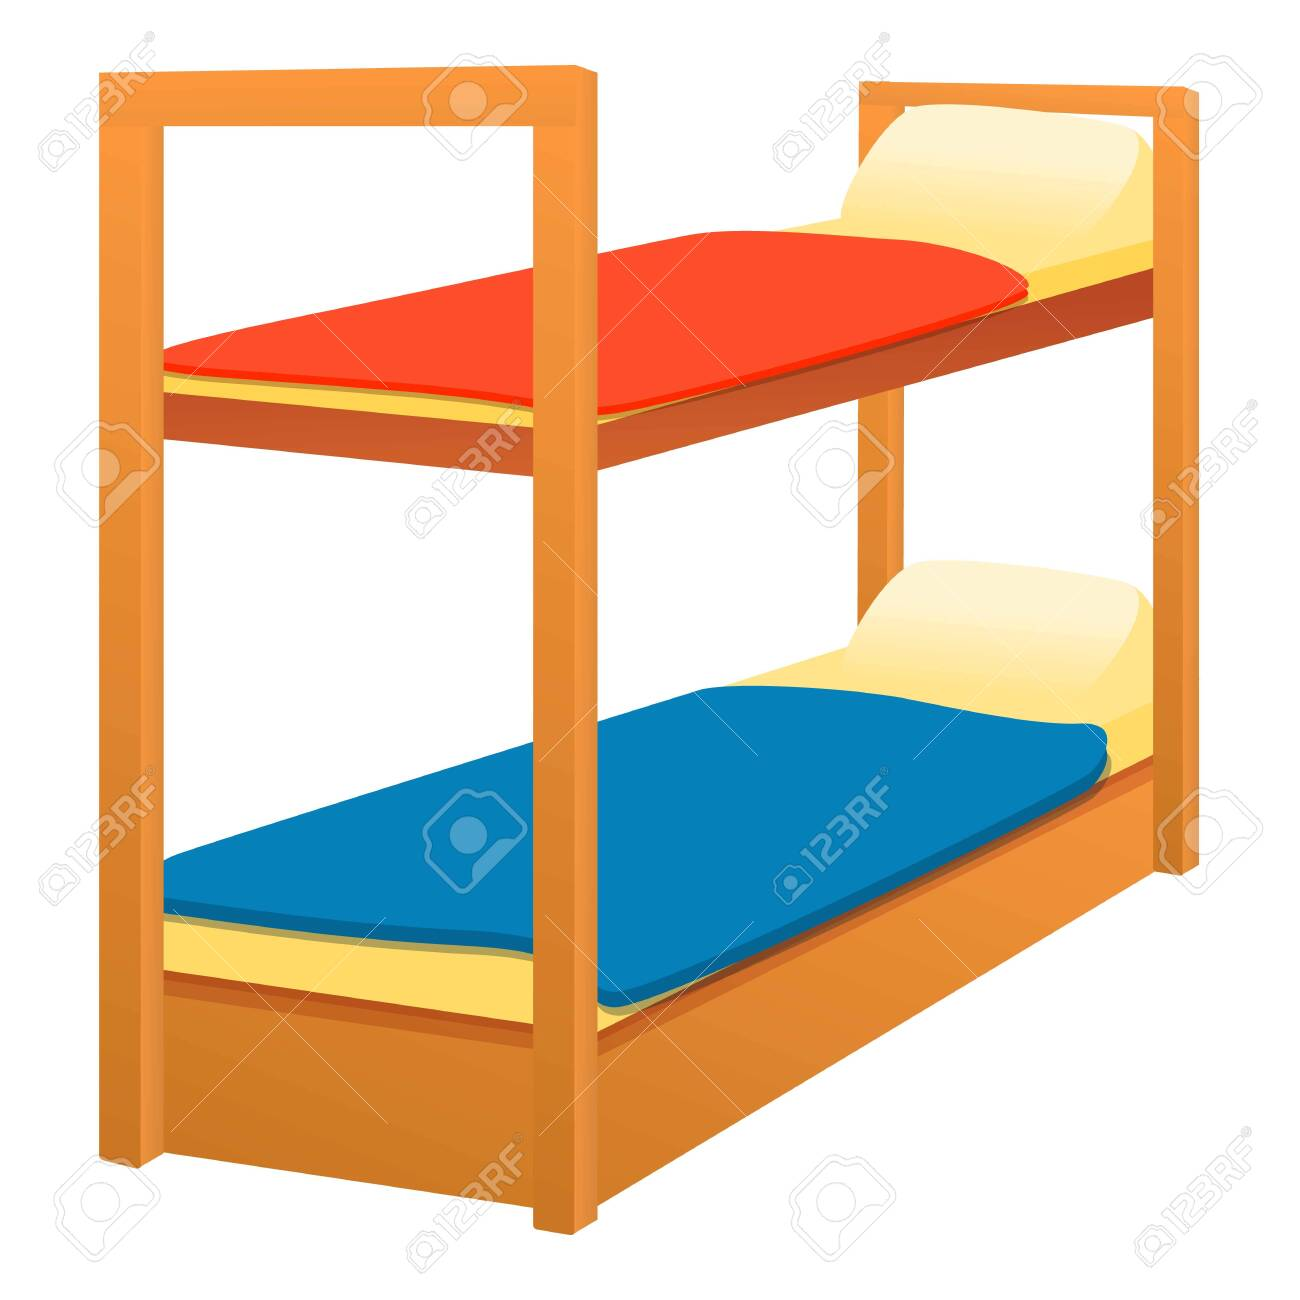 Picture of: Double Bunk Bed Icon Cartoon Of Double Bunk Bed Vector Icon Royalty Free Cliparts Vectors And Stock Illustration Image 148706660